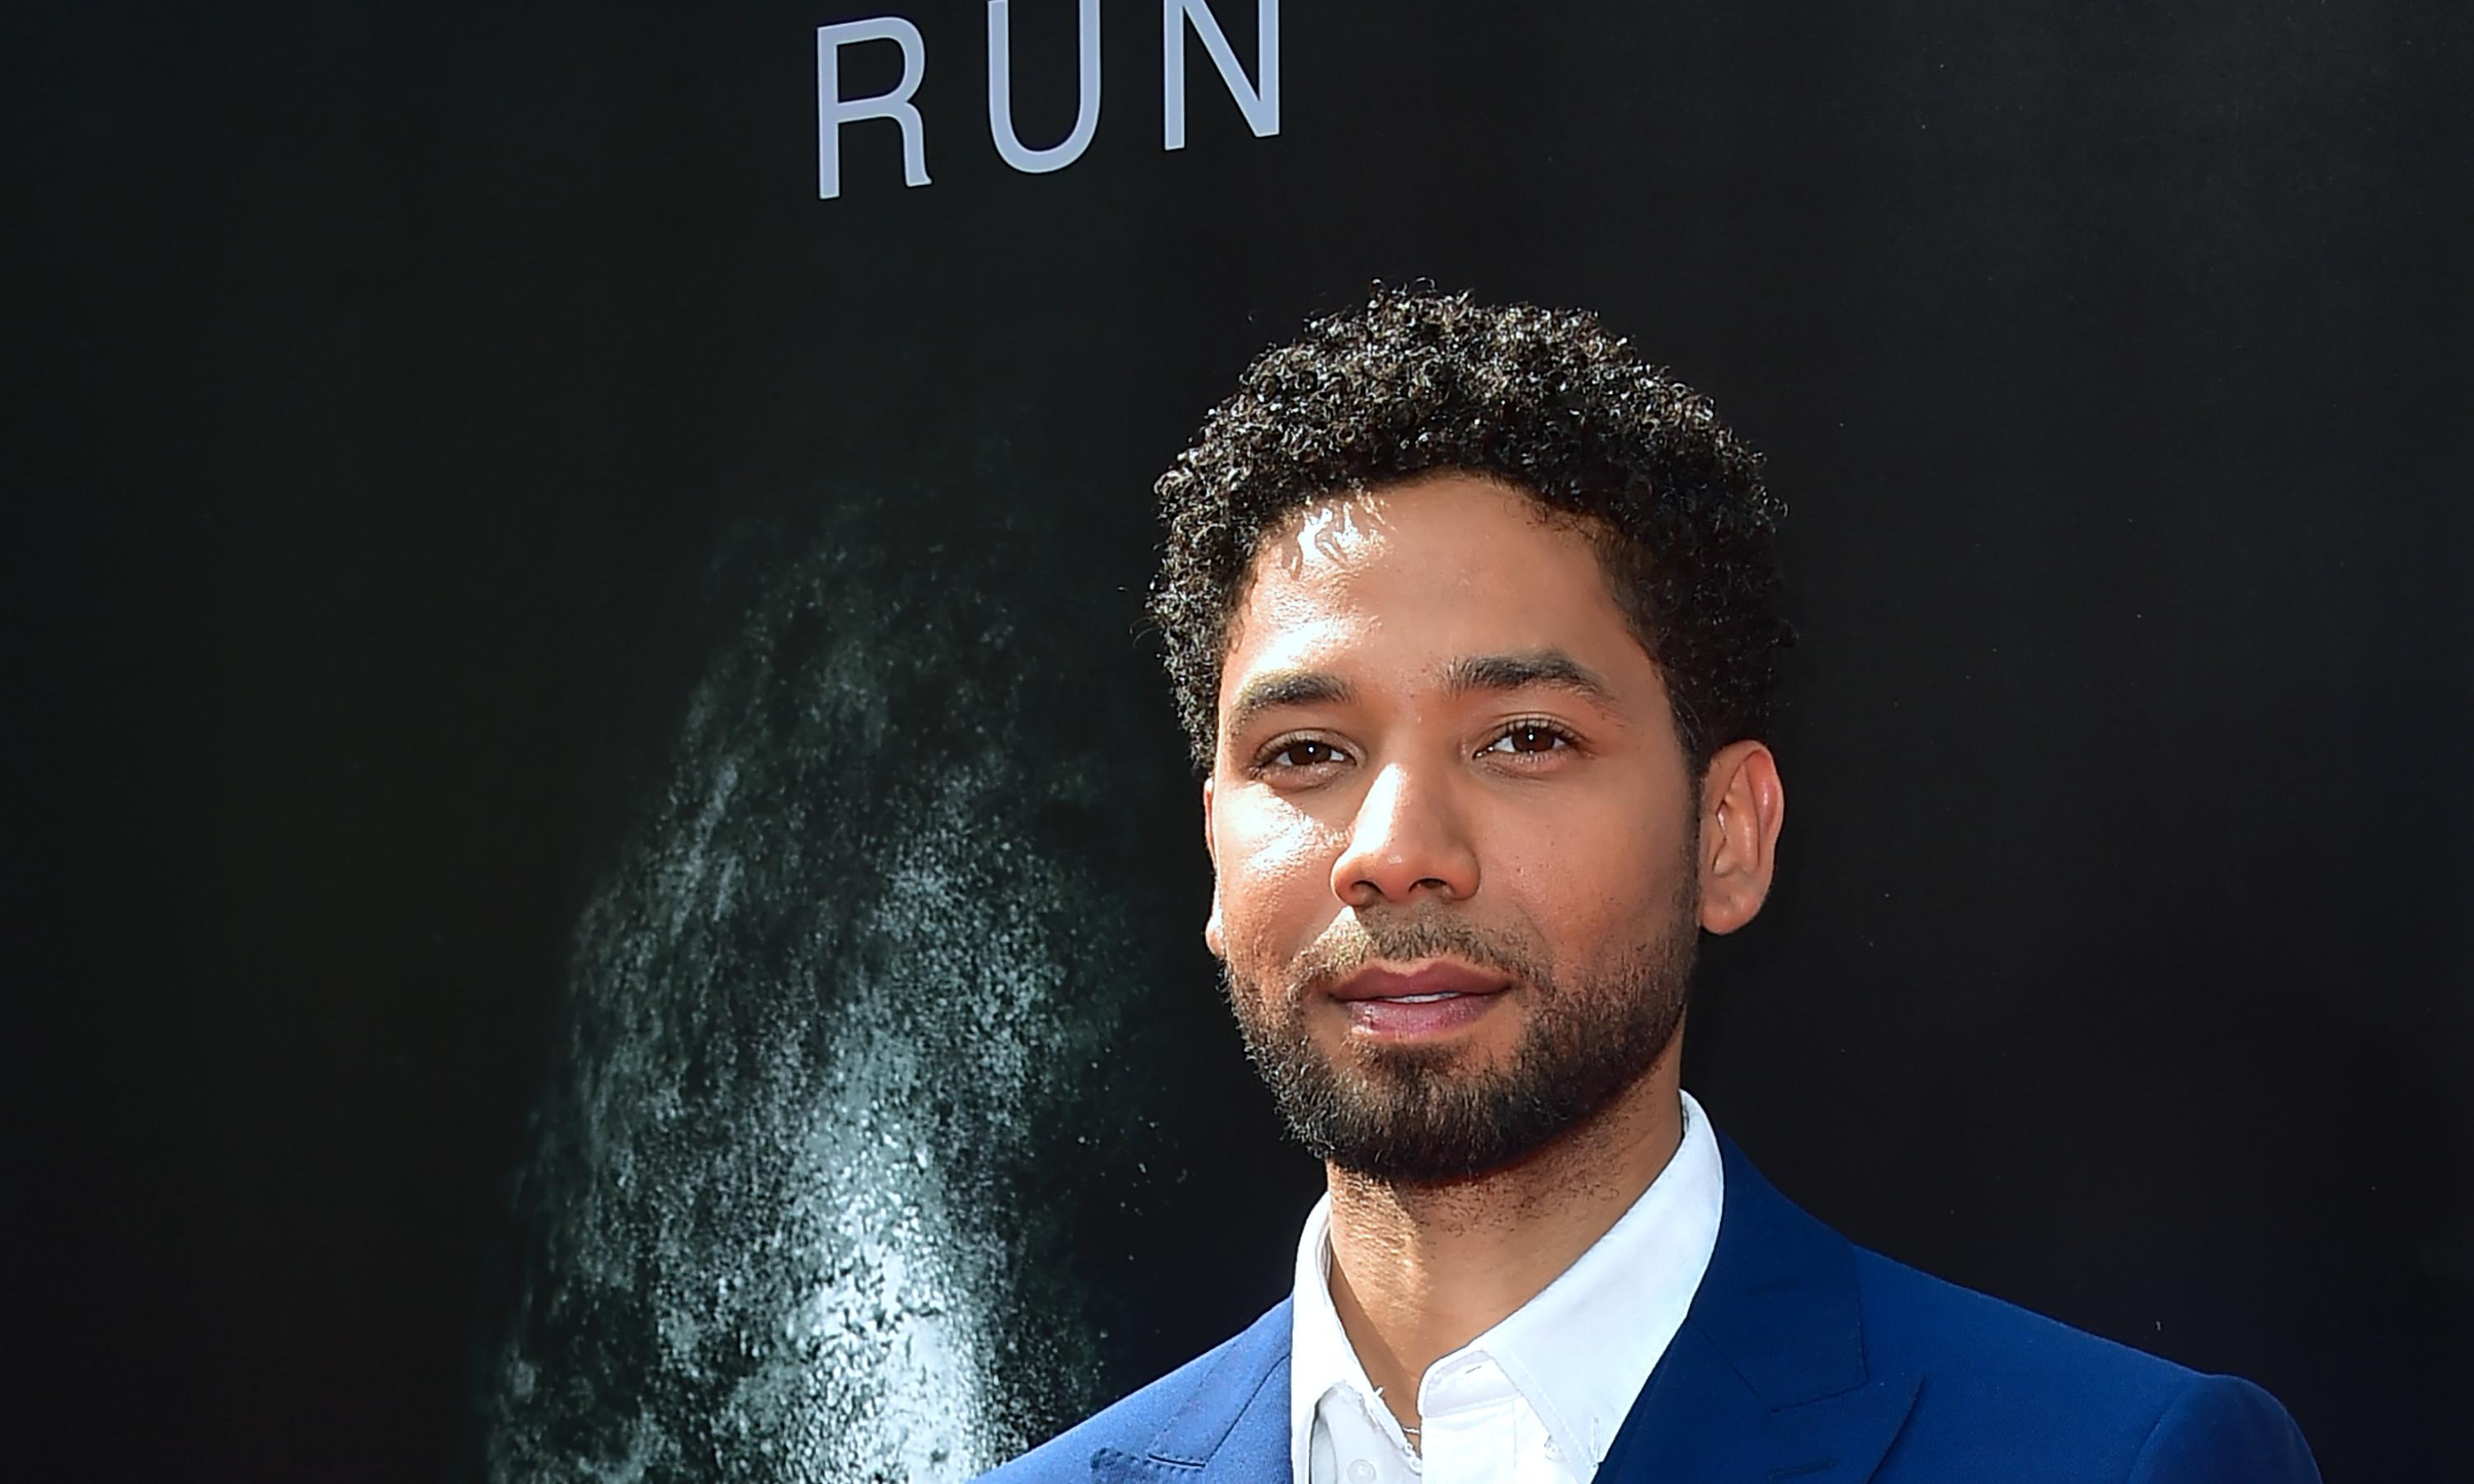 Chicago's top prosecutor removes herself from Jussie Smollett case